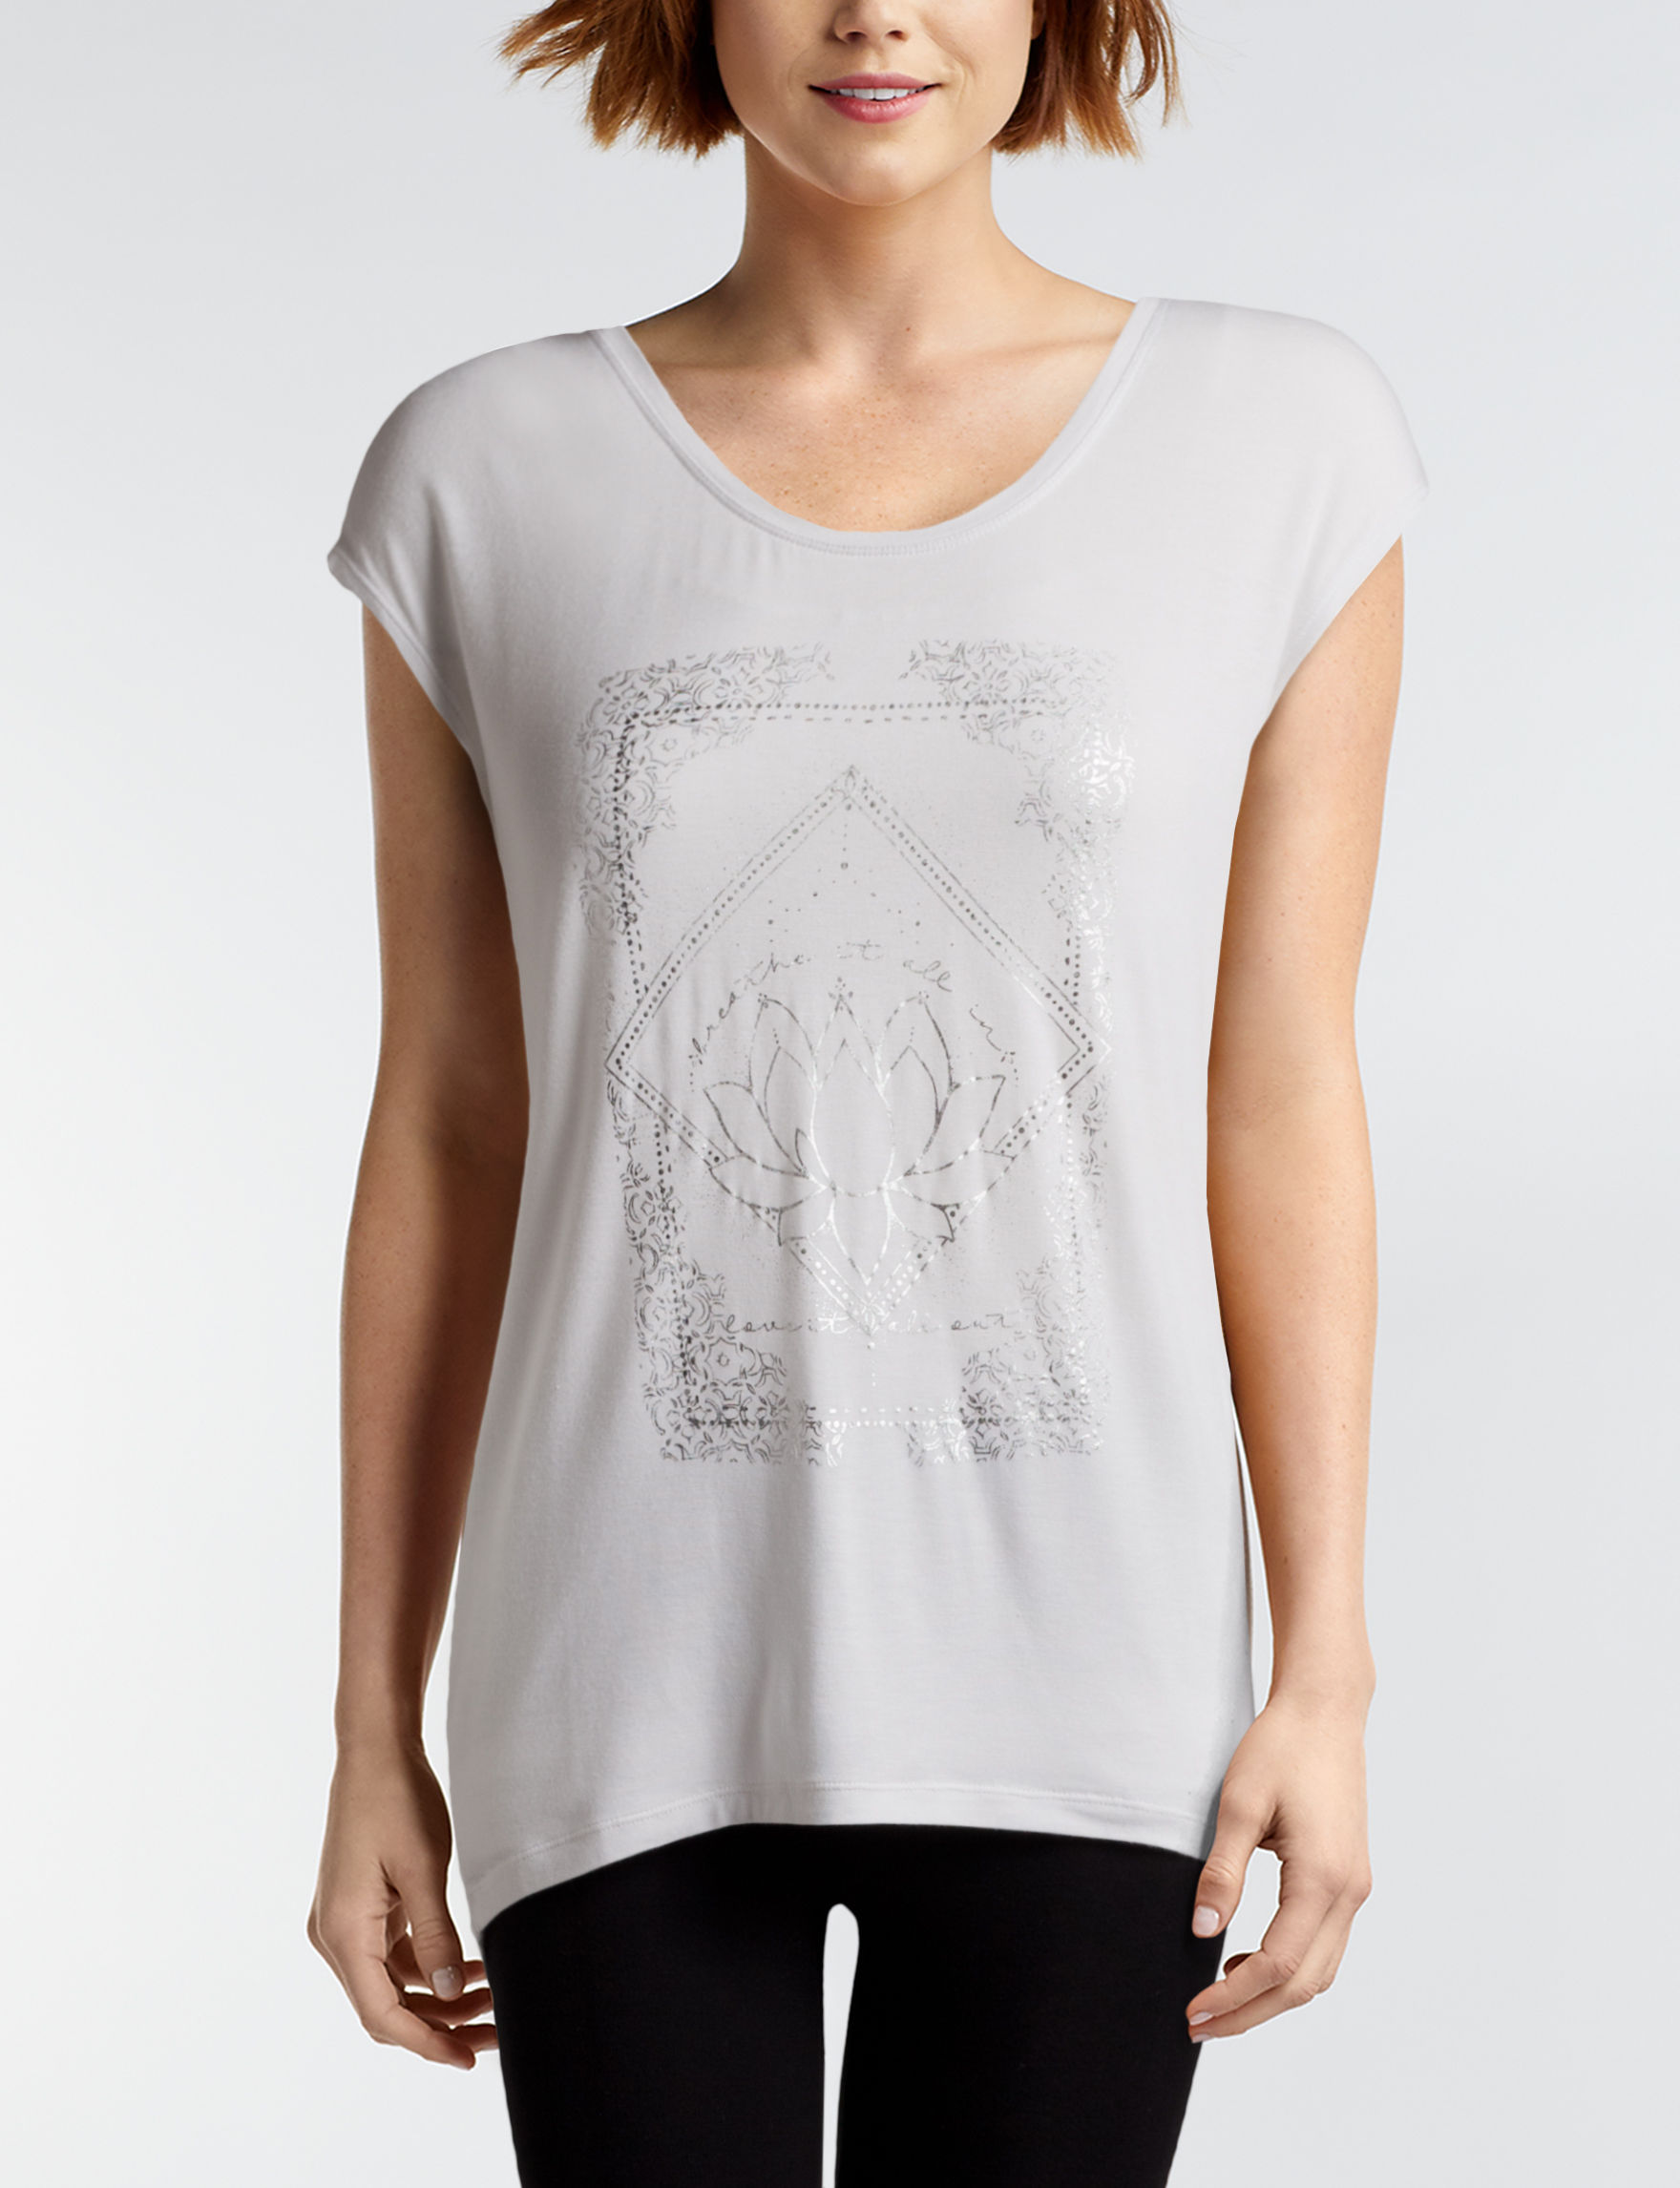 Gaiam White Tees & Tanks